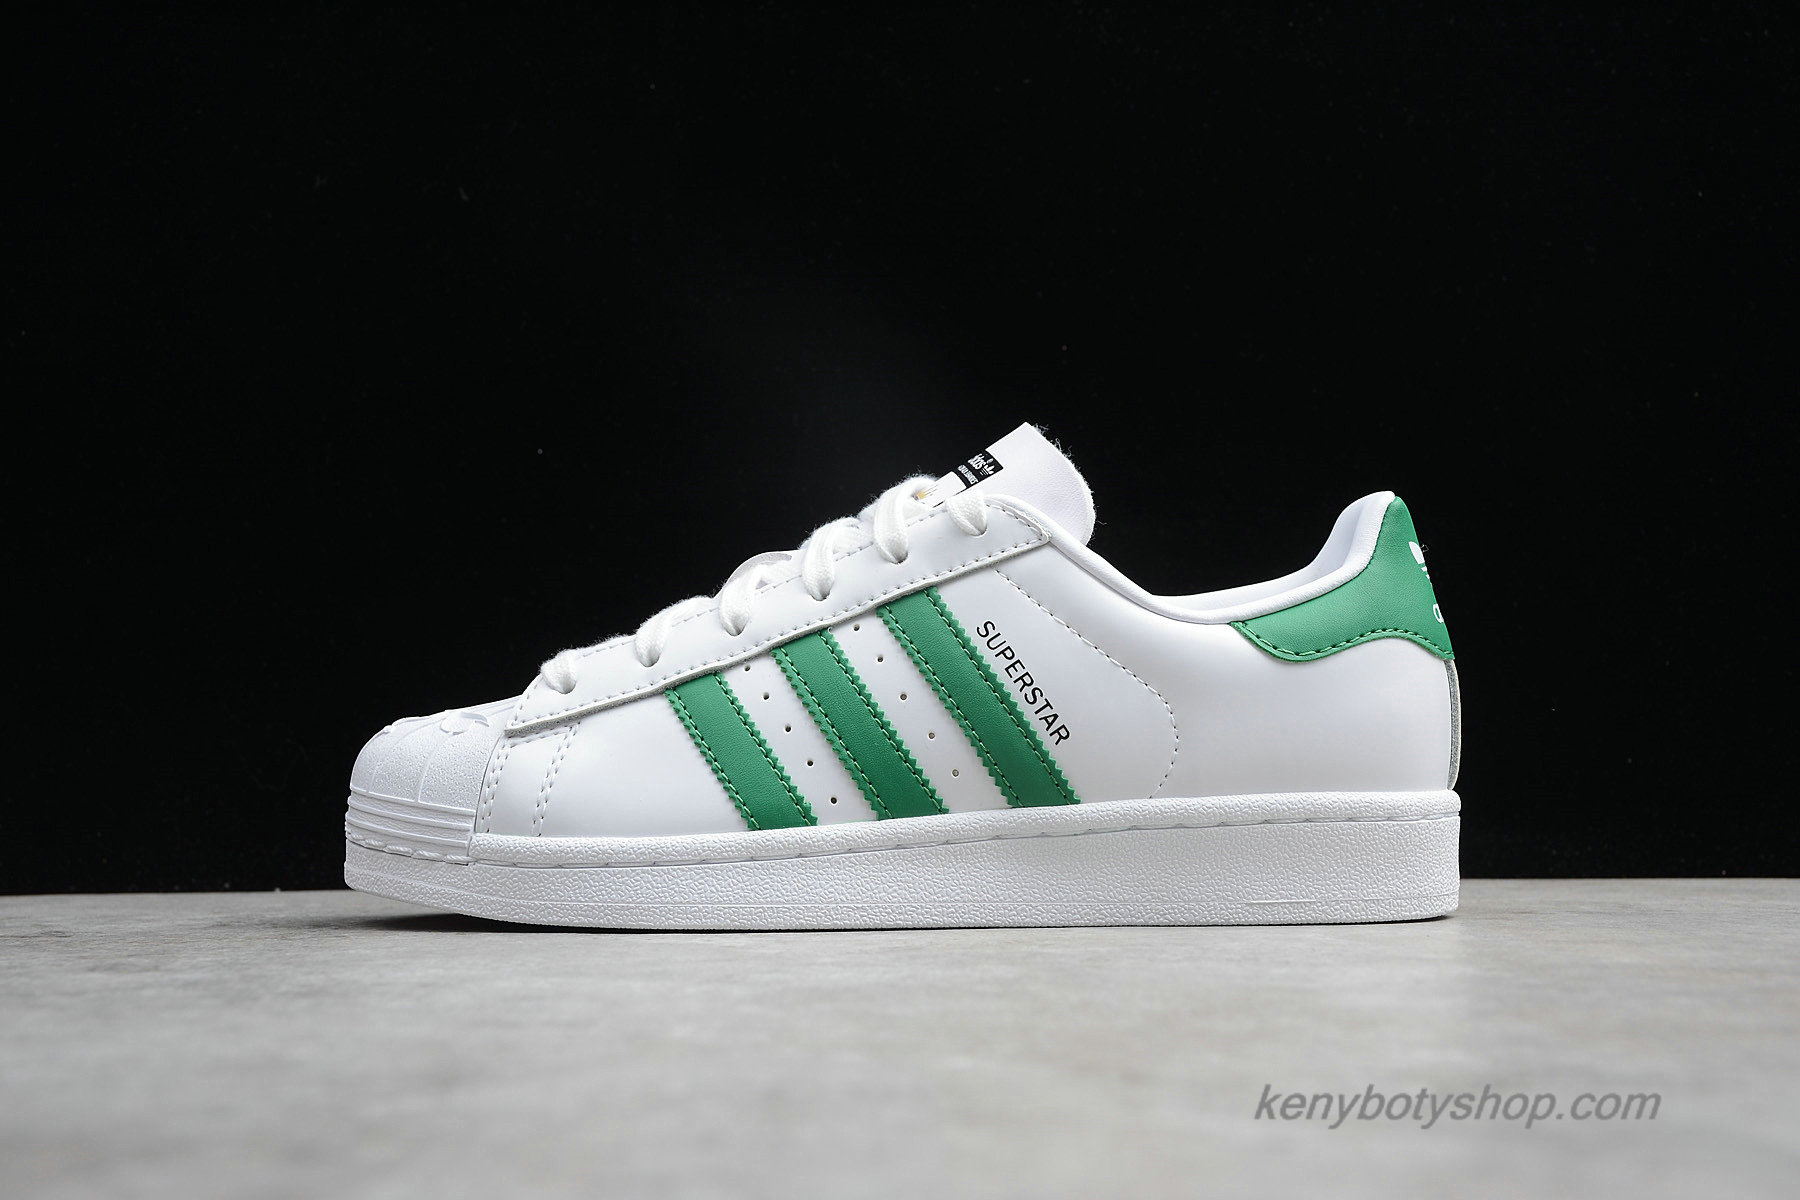 Boty Adidas Originals Superstar Nigo Bearfoot Unisex S83385 (Bílý / Zelená)